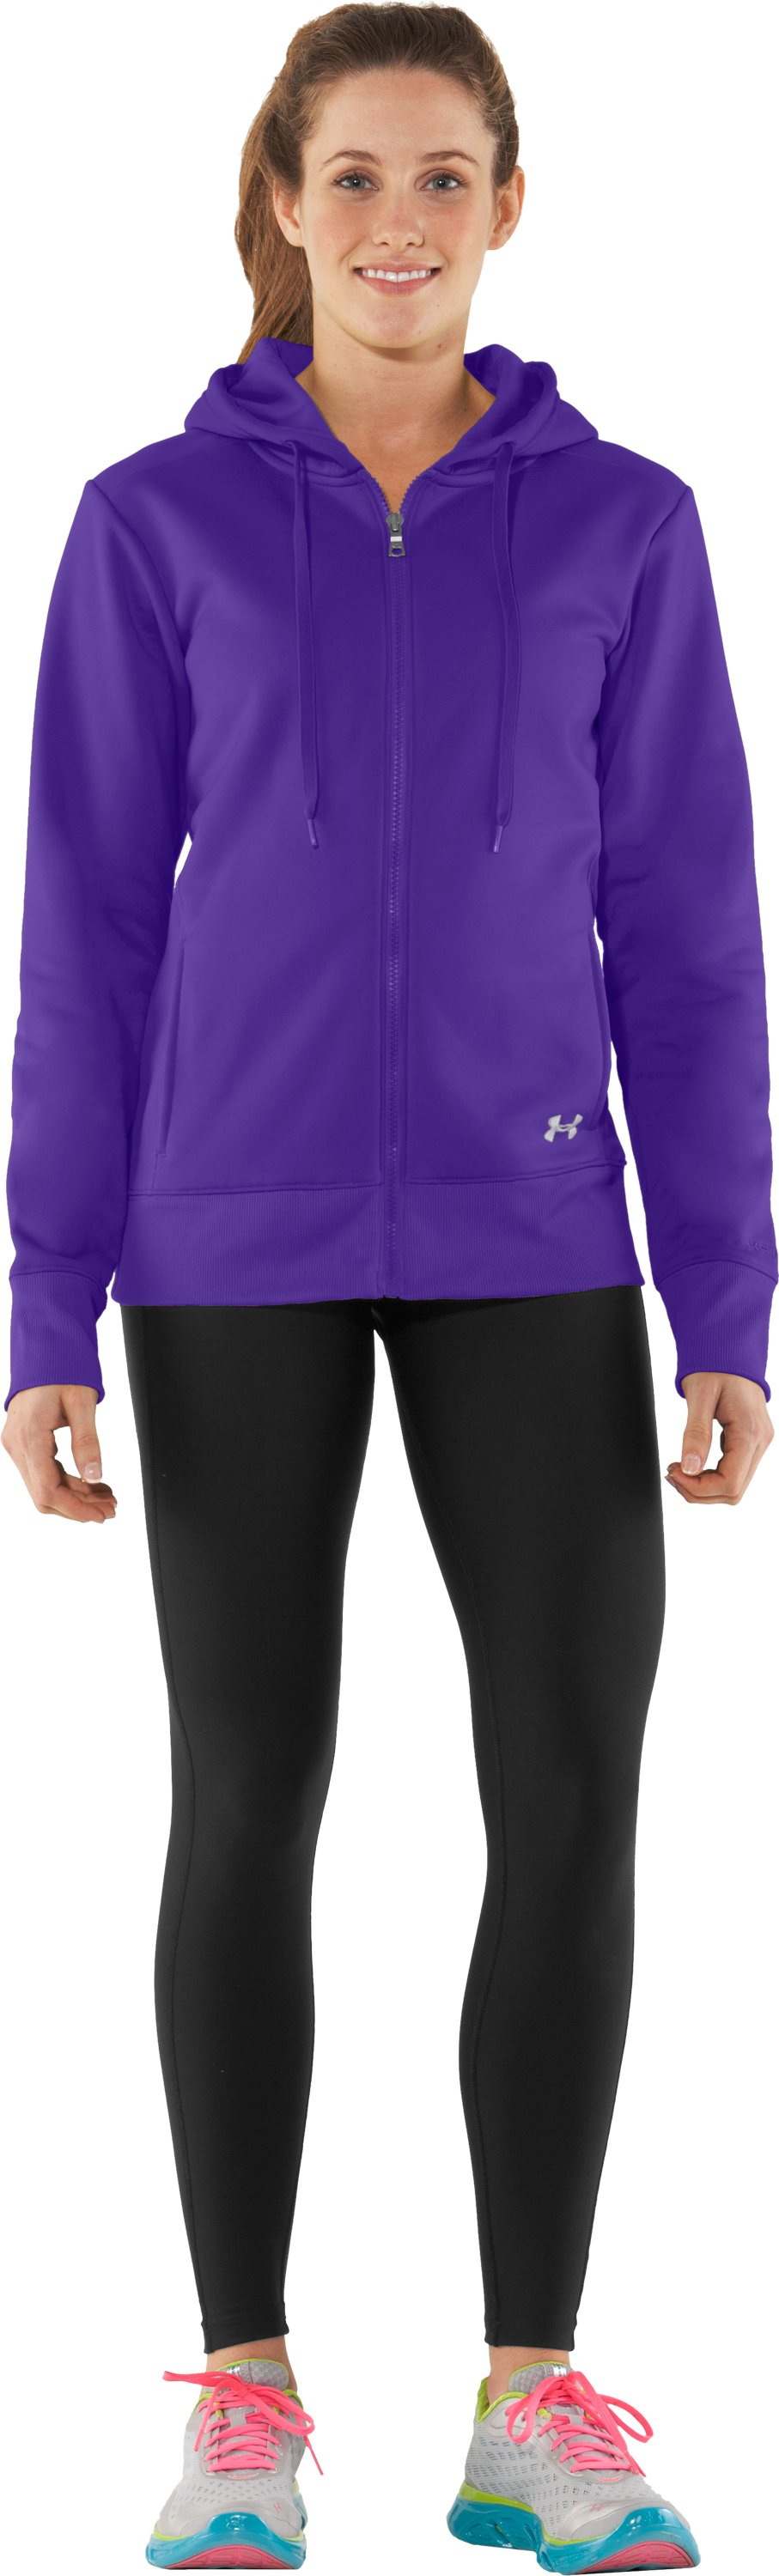 Women's Armour® Fleece Storm Full Zip Hoodie, Pluto